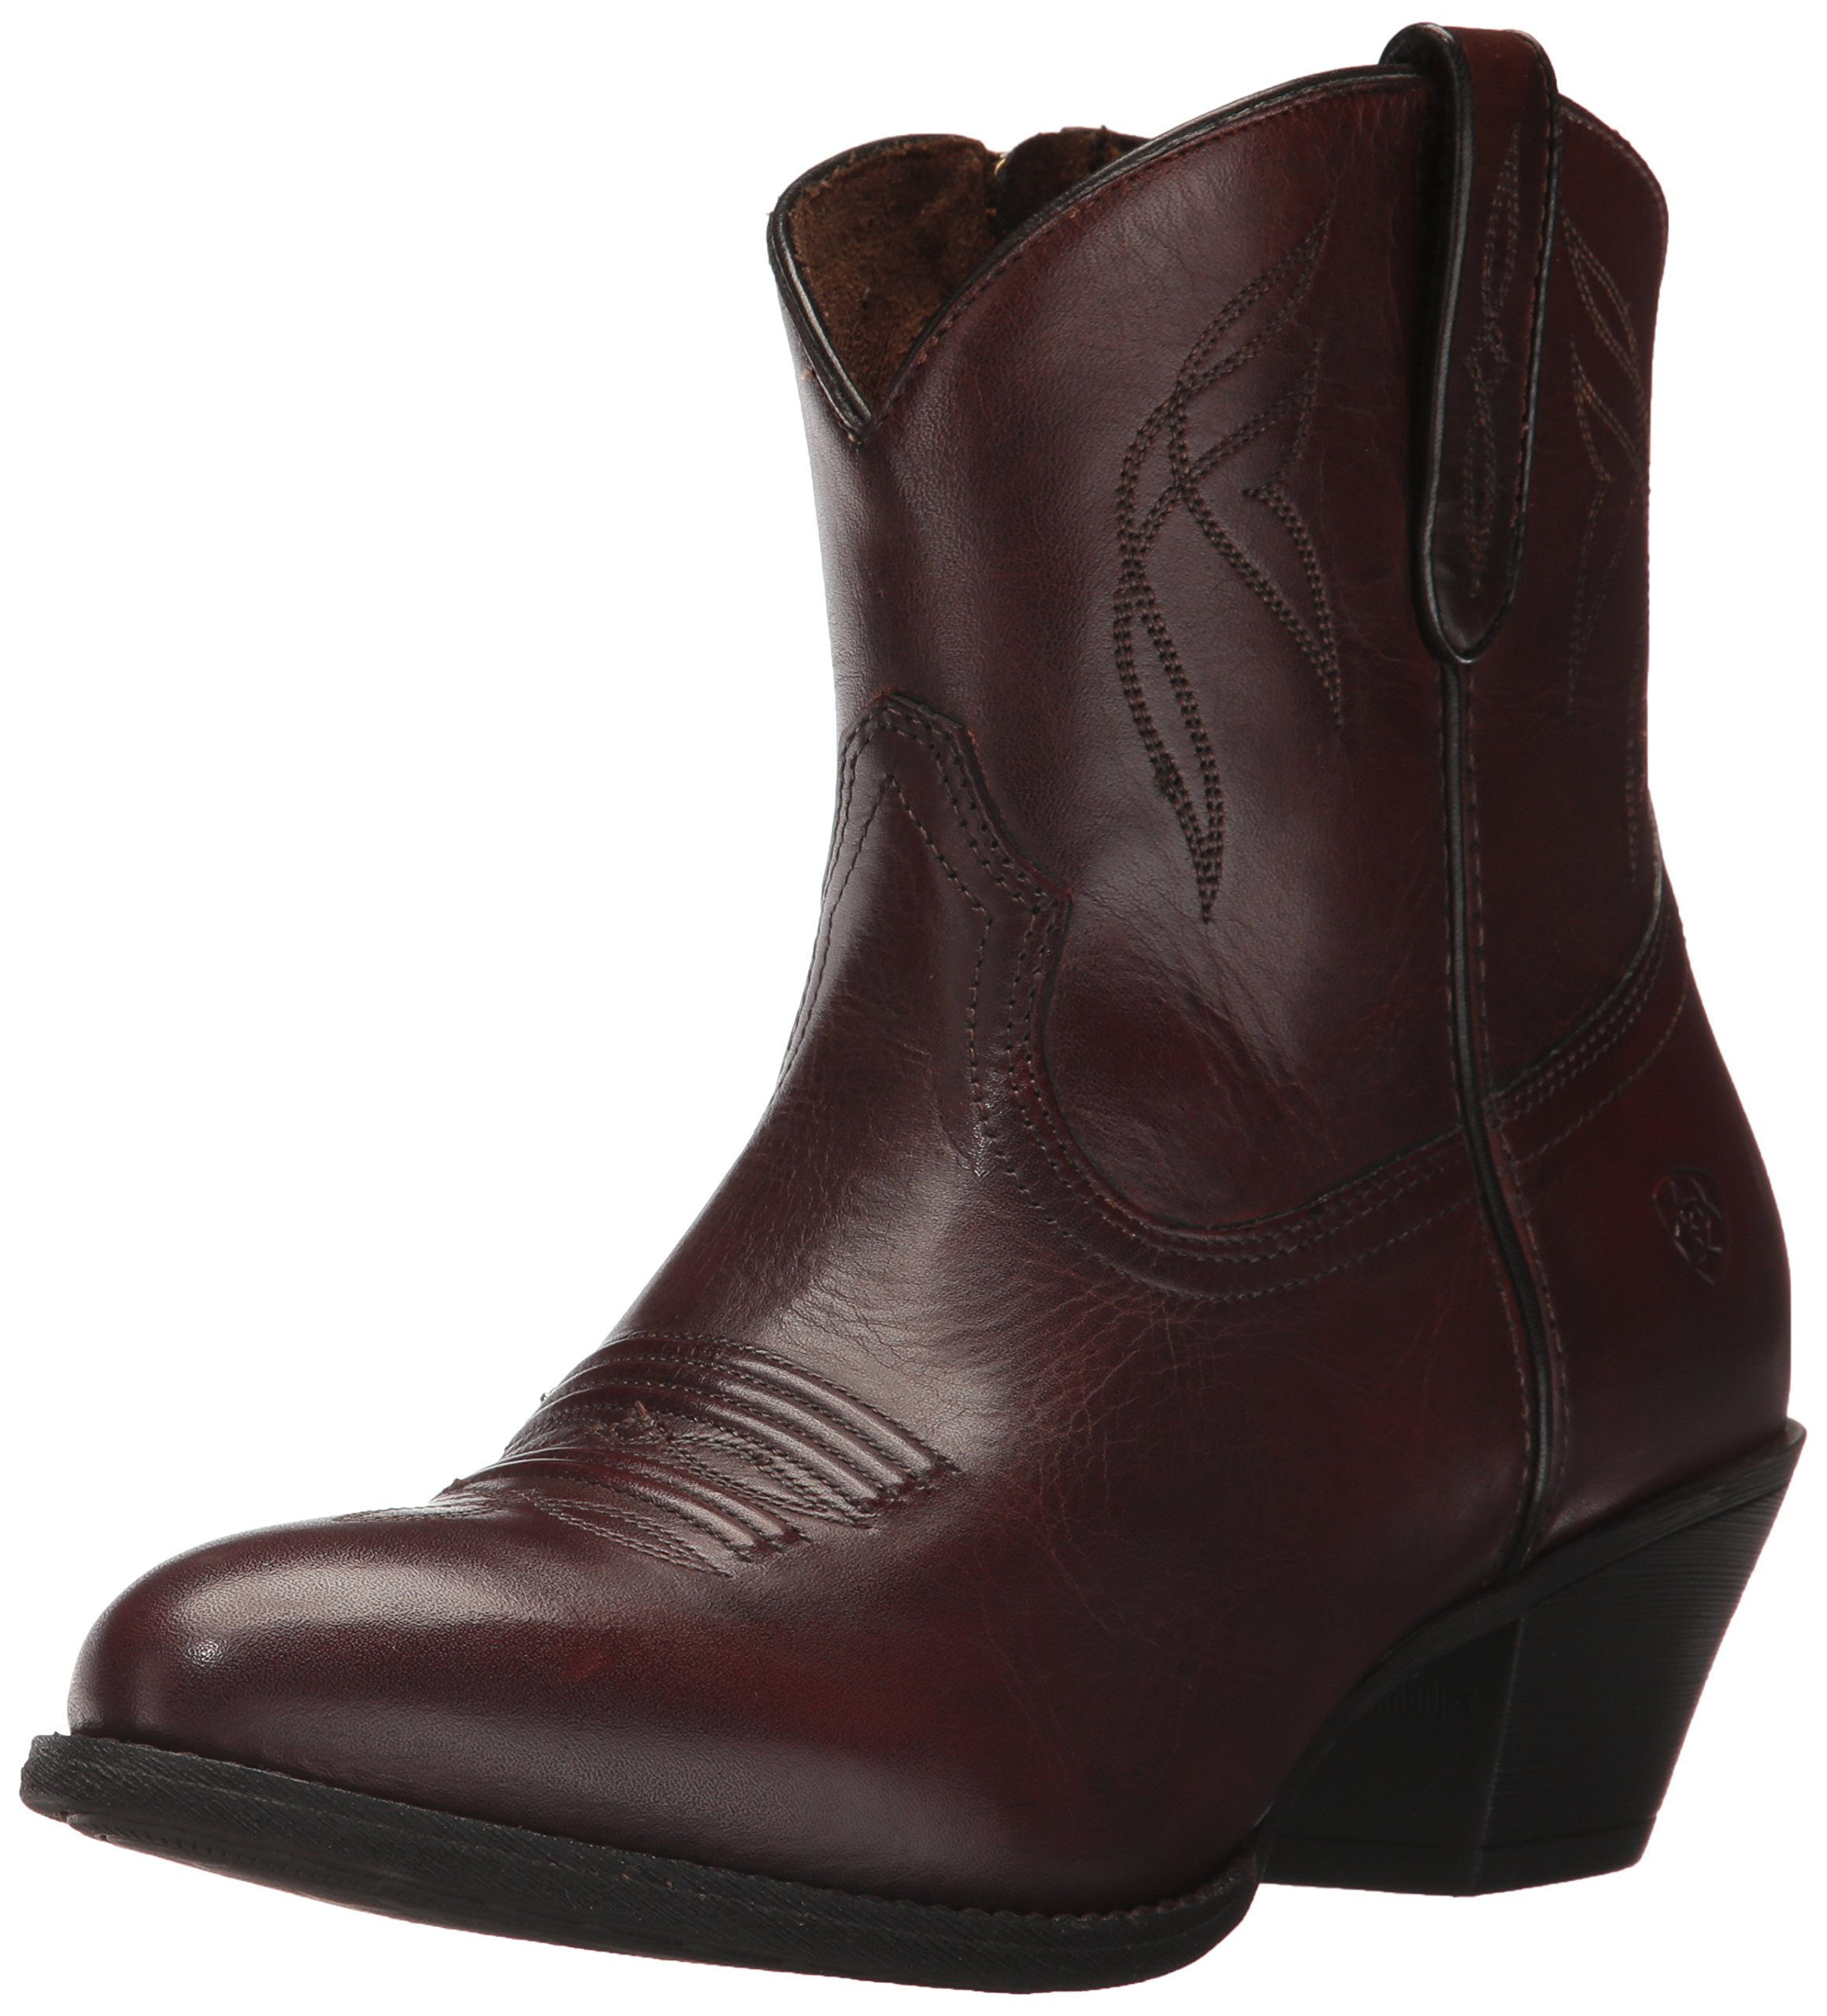 Ariat Women's Darlin Work Boot, Naturally Dark Brown, 8.5 B US